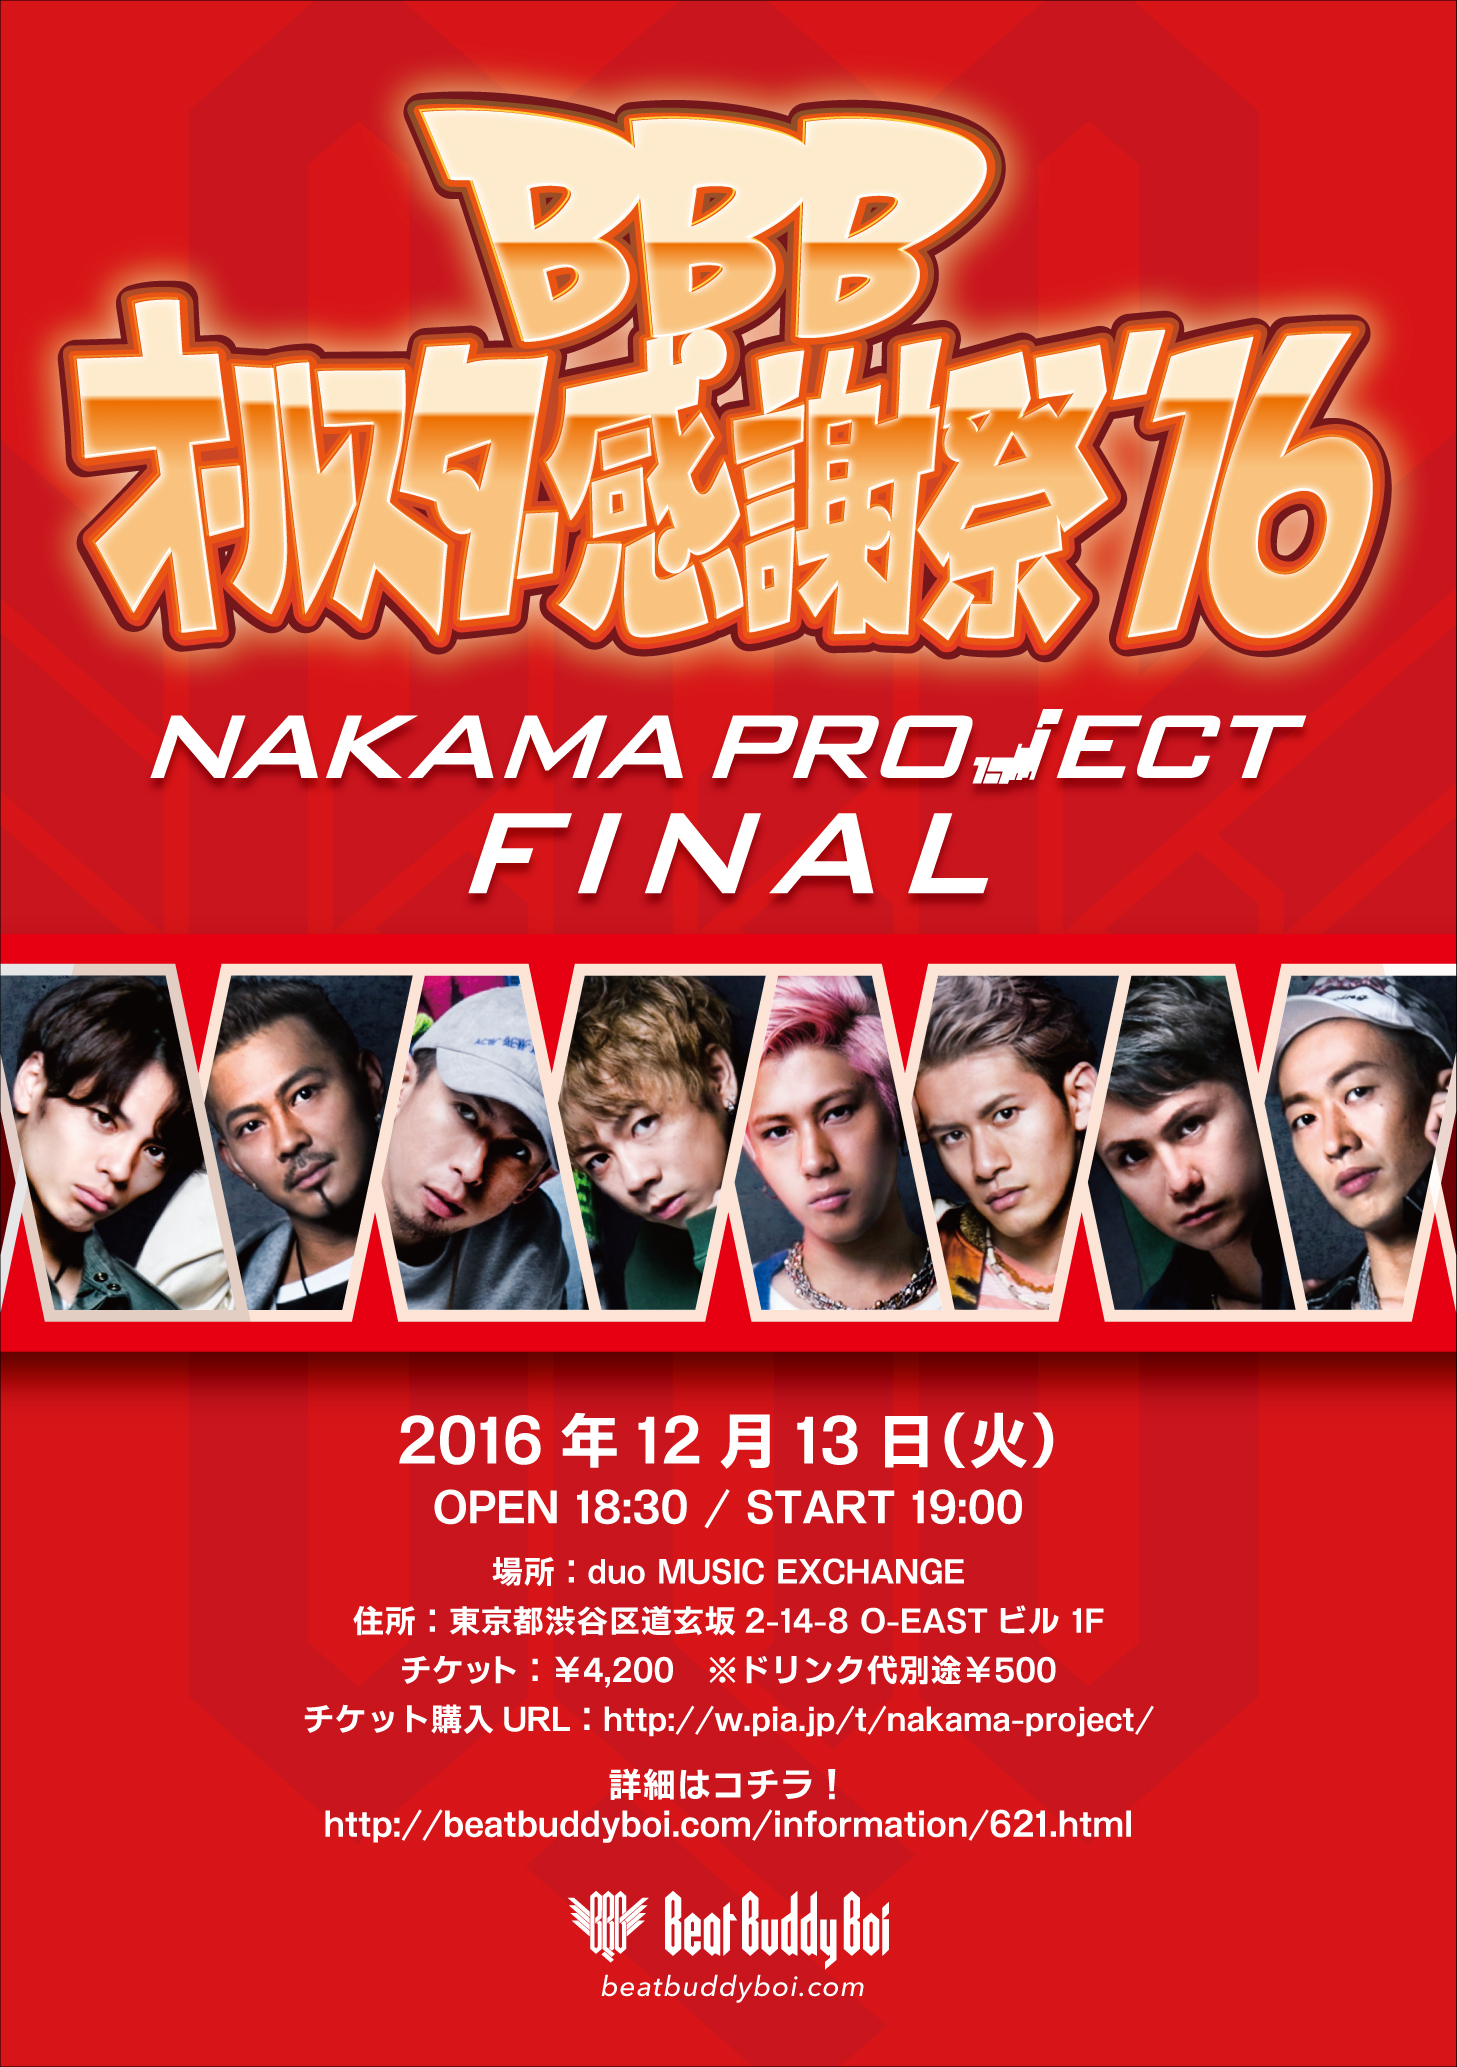 NAKAMA PROJECT FINAL